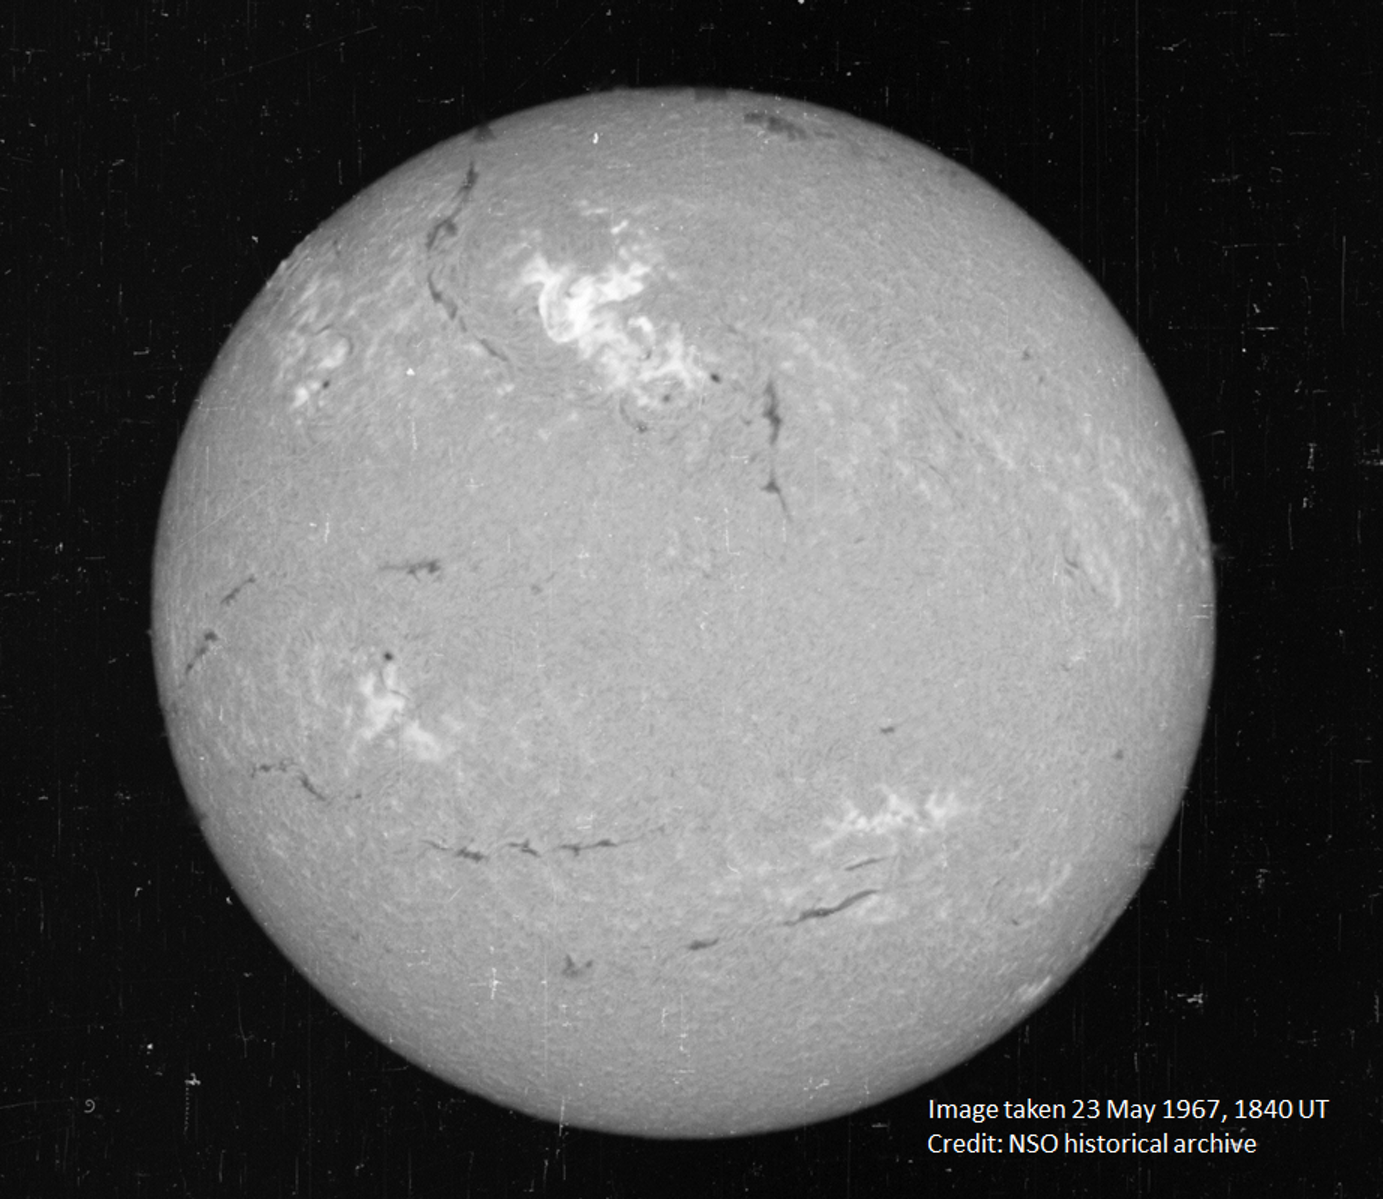 A view of the Sun on May 23, 1967, in a narrow visible wavelength of light called Hydrogen-alpha. The bright region in the top center region of brightness shows the area where the large flare occurred.